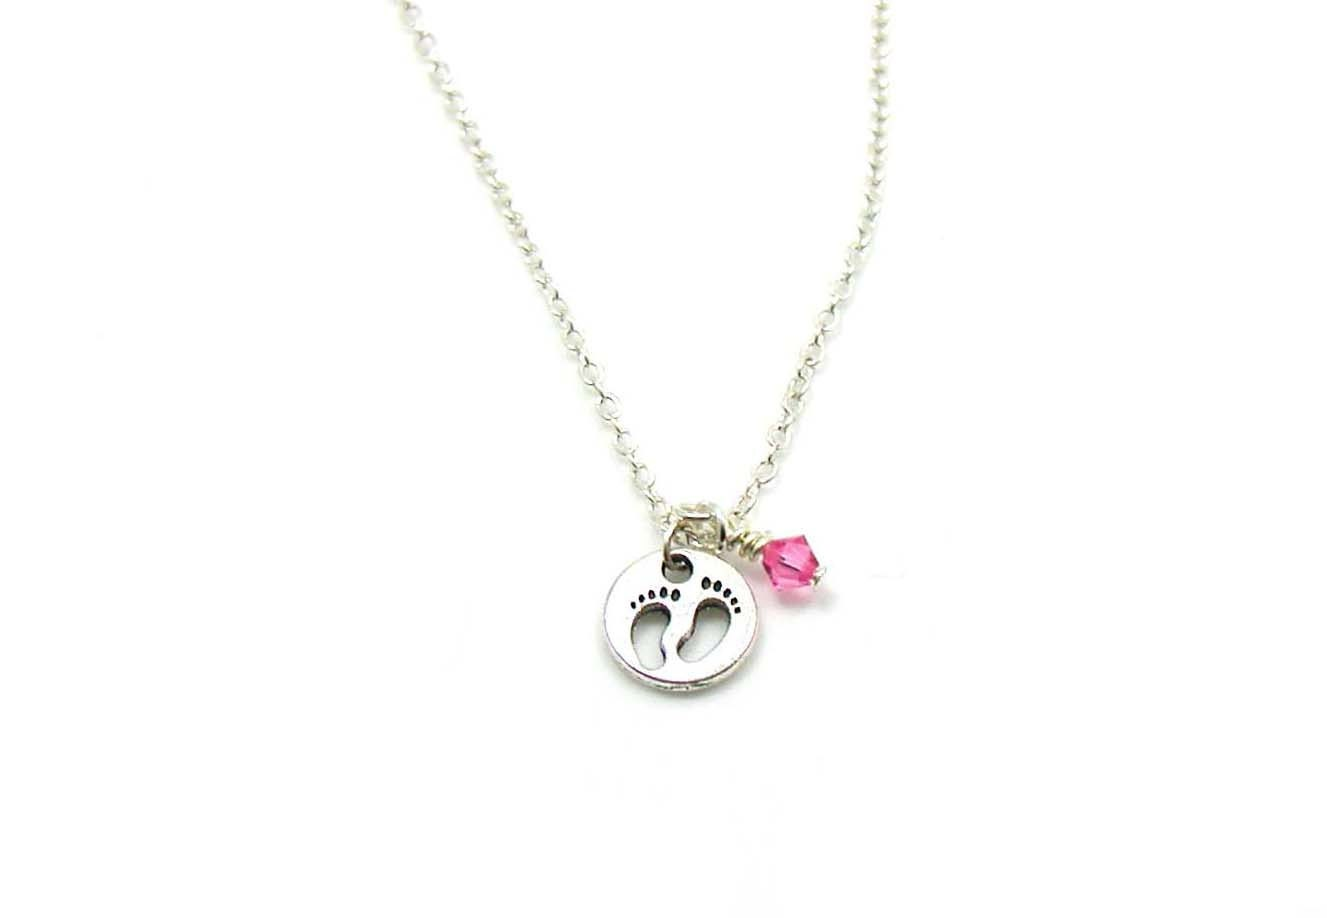 baby necklace charm necklace charm jewelry baby